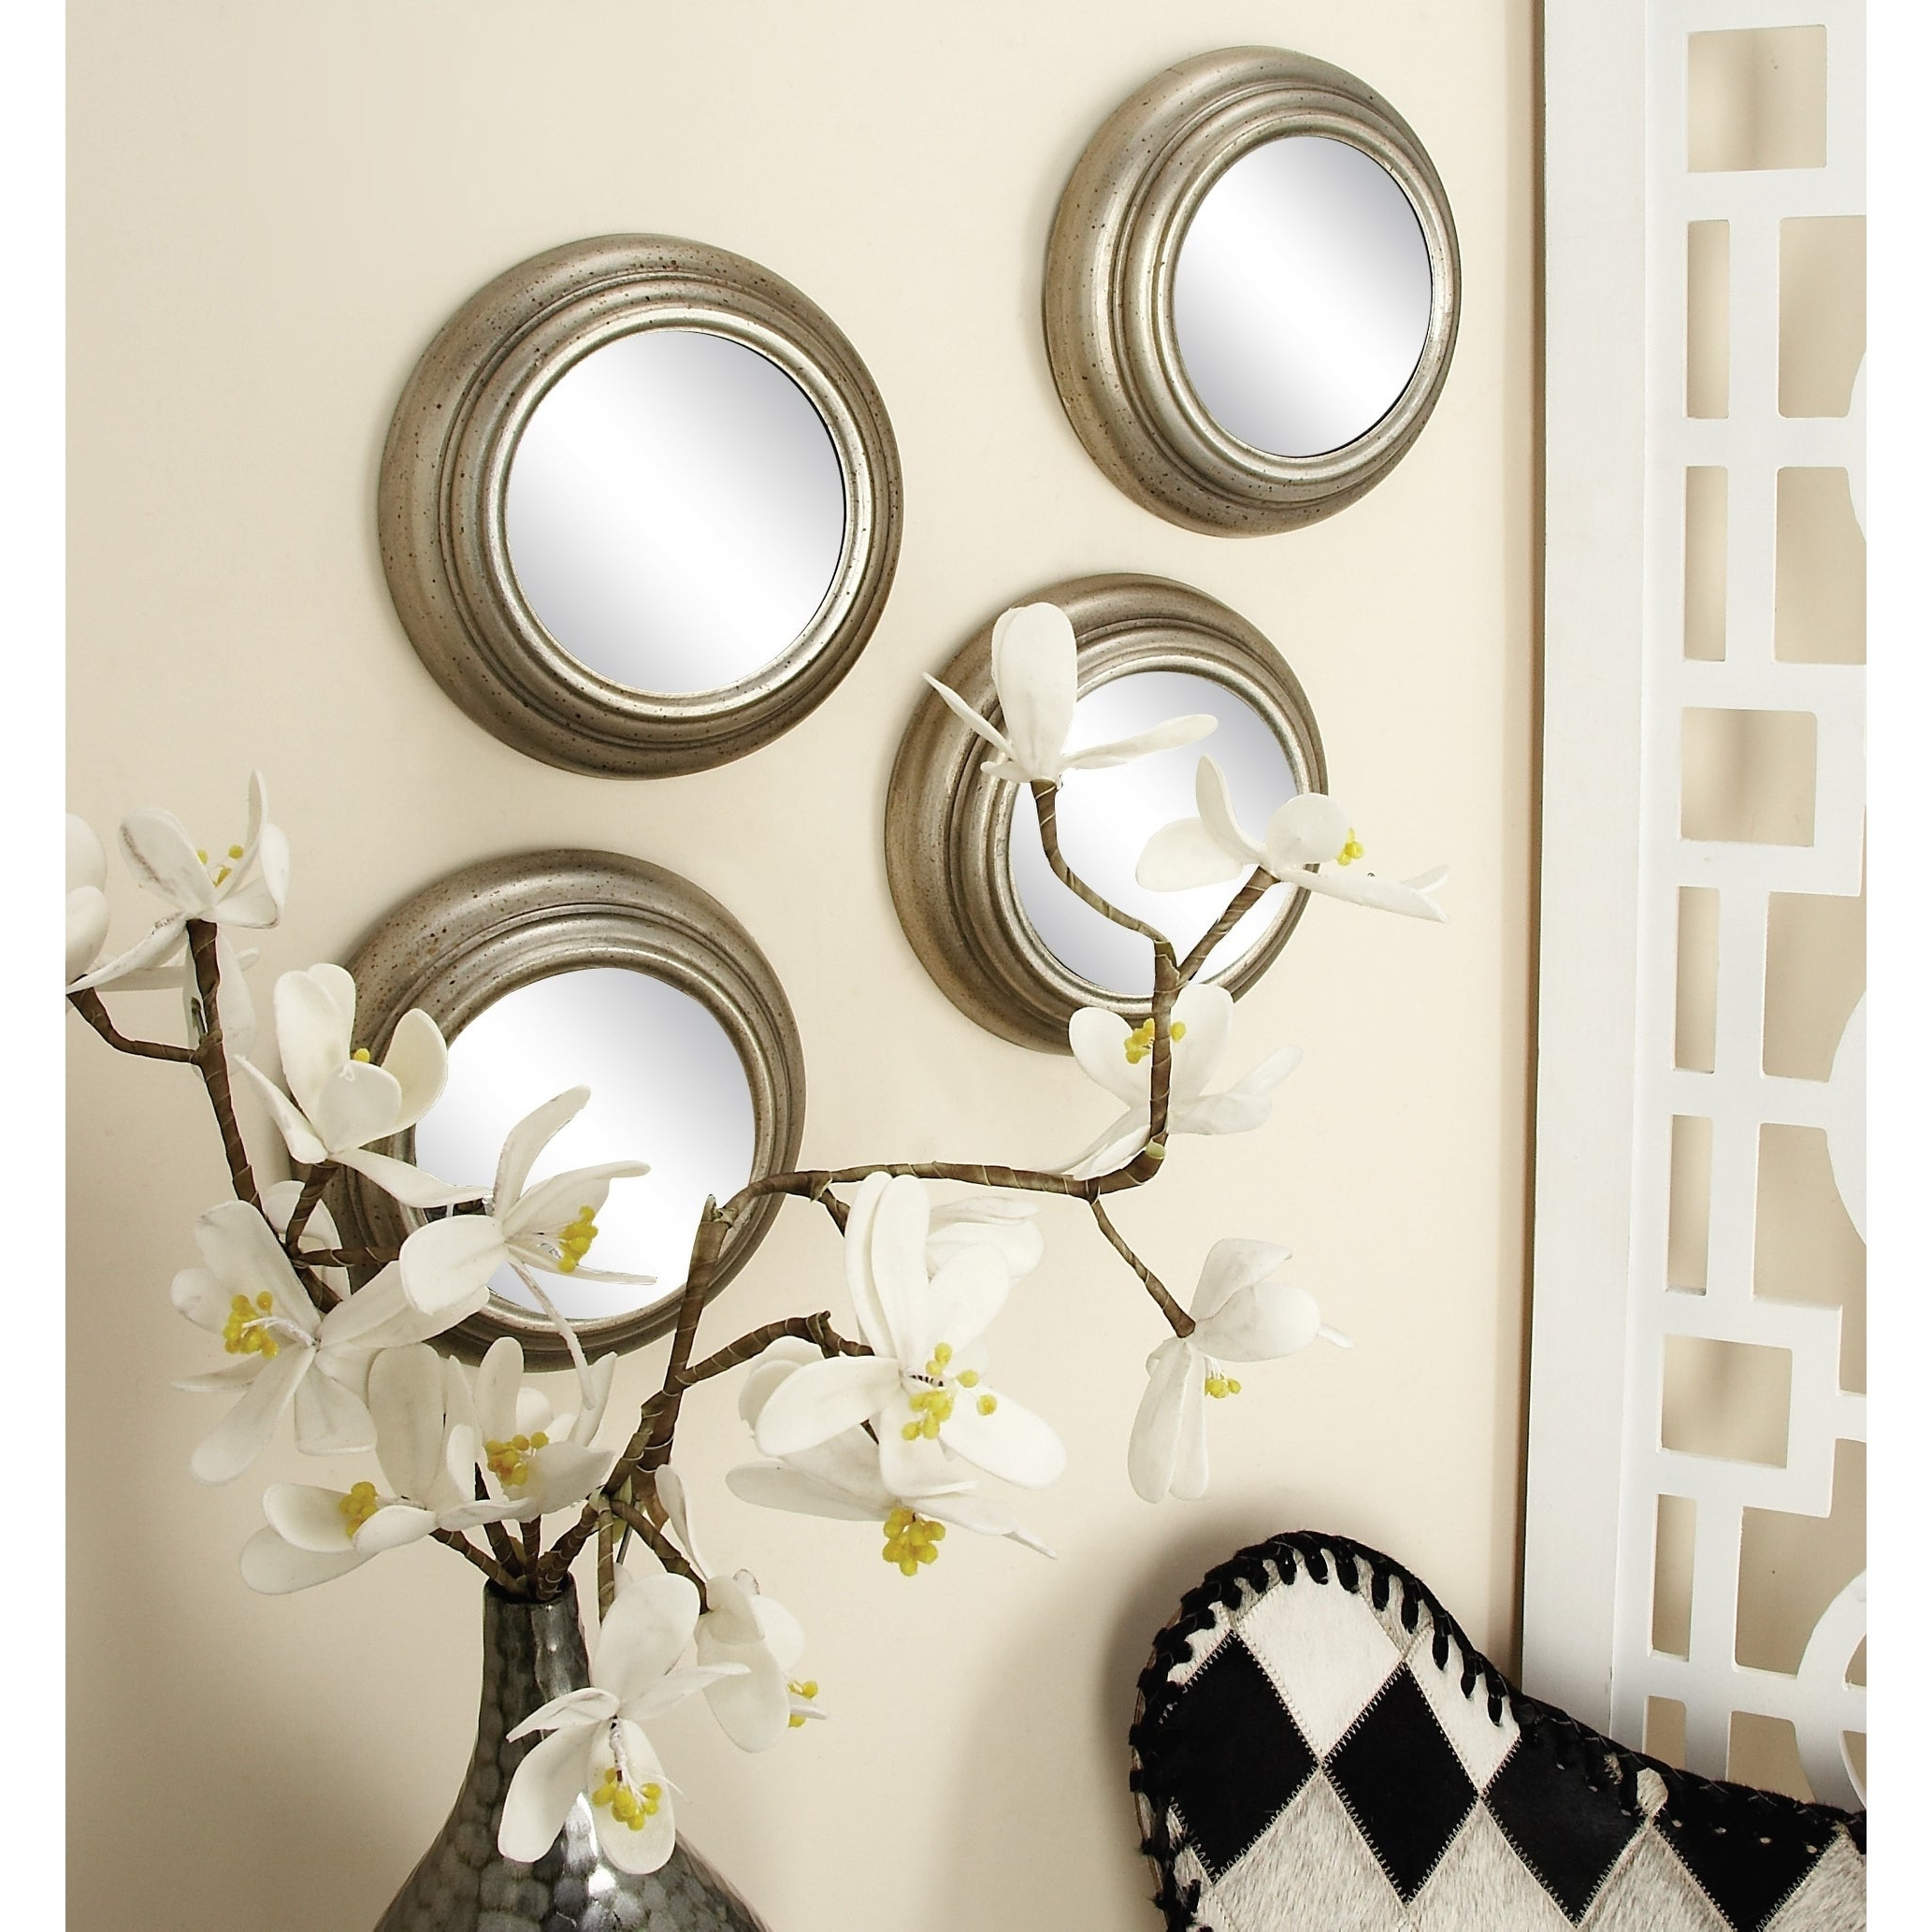 Recent Round Decorative Wall Mirrors Regarding Set Of 12 Contemporary Round Decorative Wall Mirrorsstudio 350 – Silver (Gallery 1 of 20)